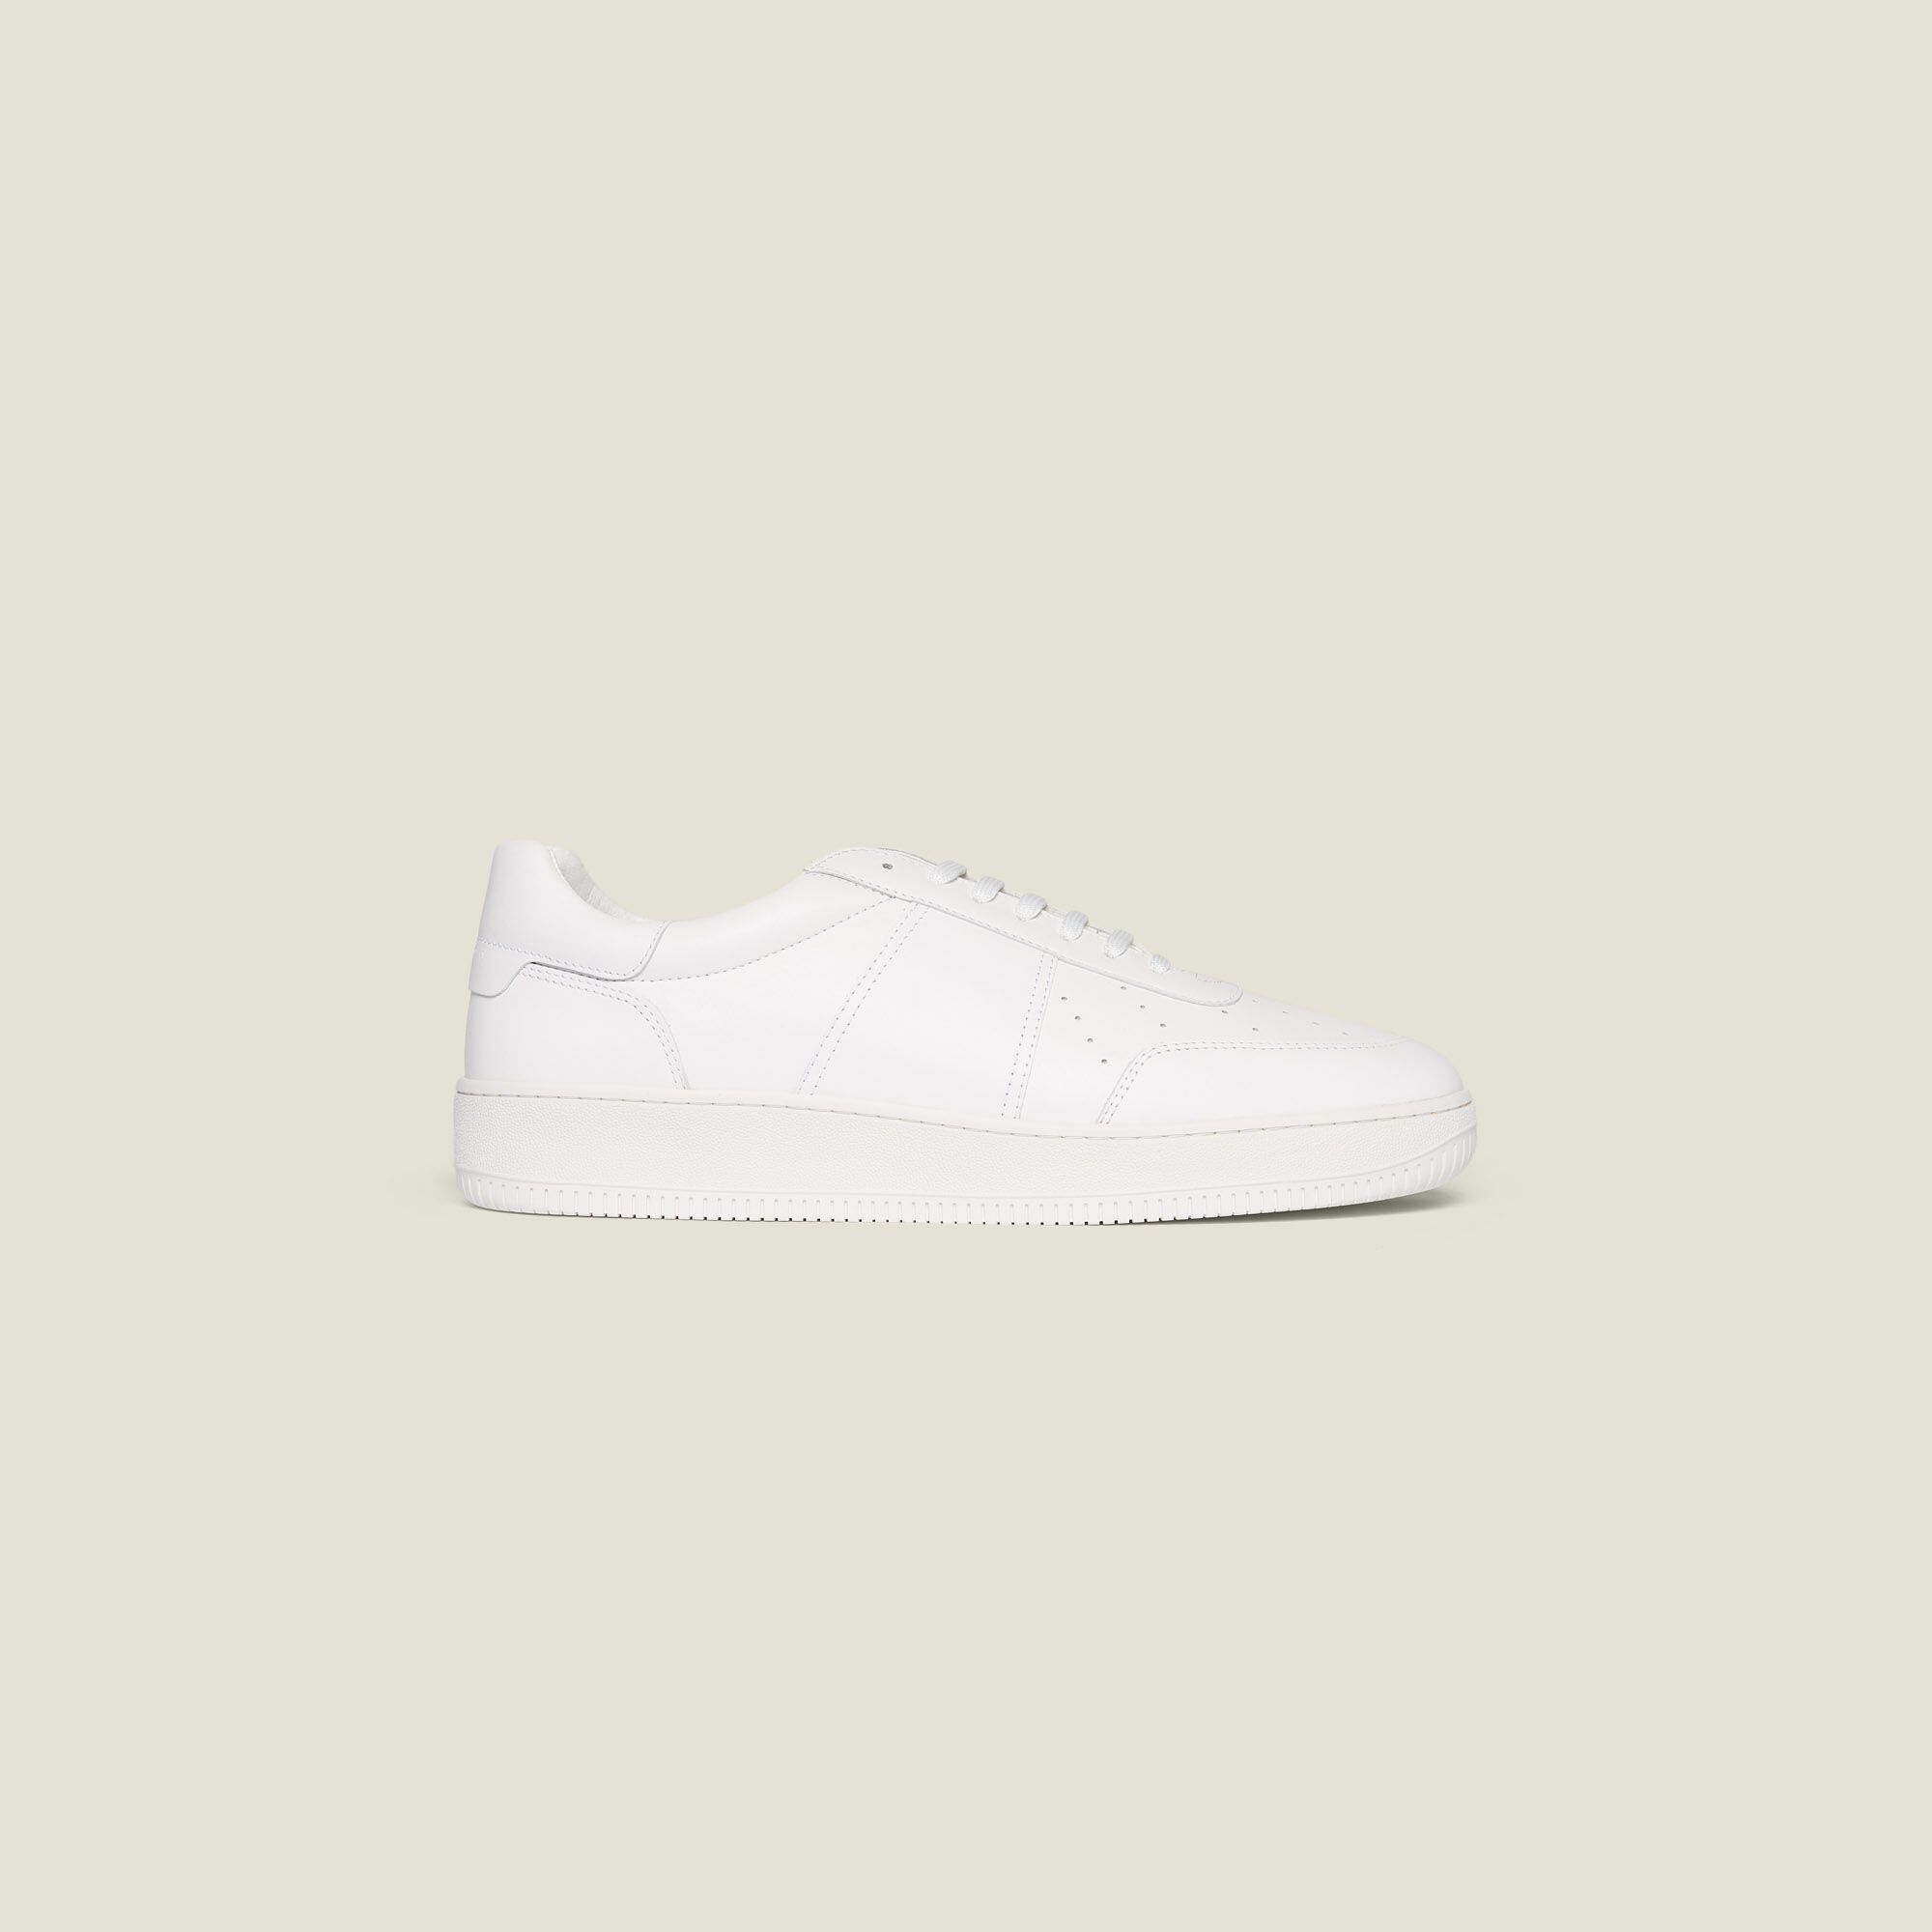 Plain leather sneakers - Shoes   Sandro